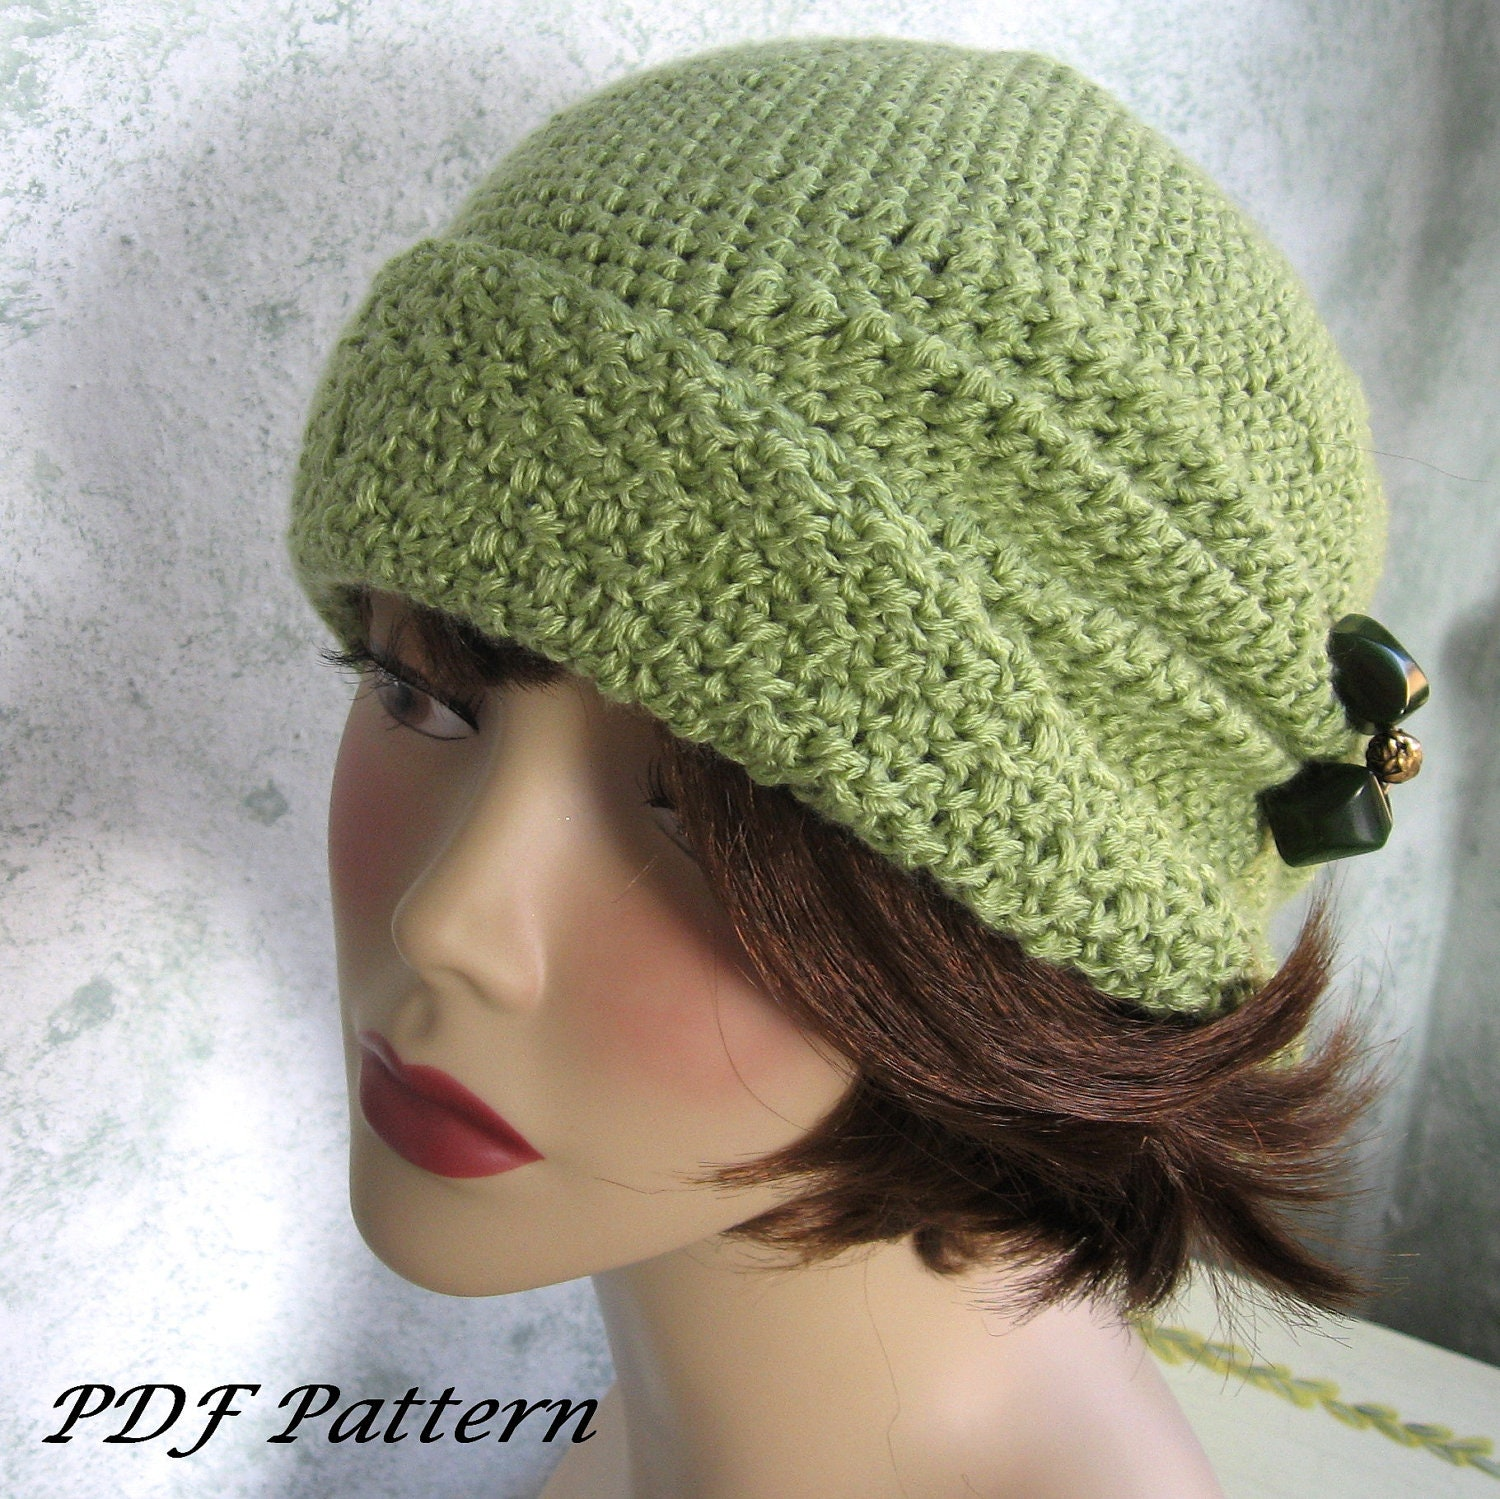 Crochet Hat Free Pattern Woman : Crochet Hat Pattern For Women images